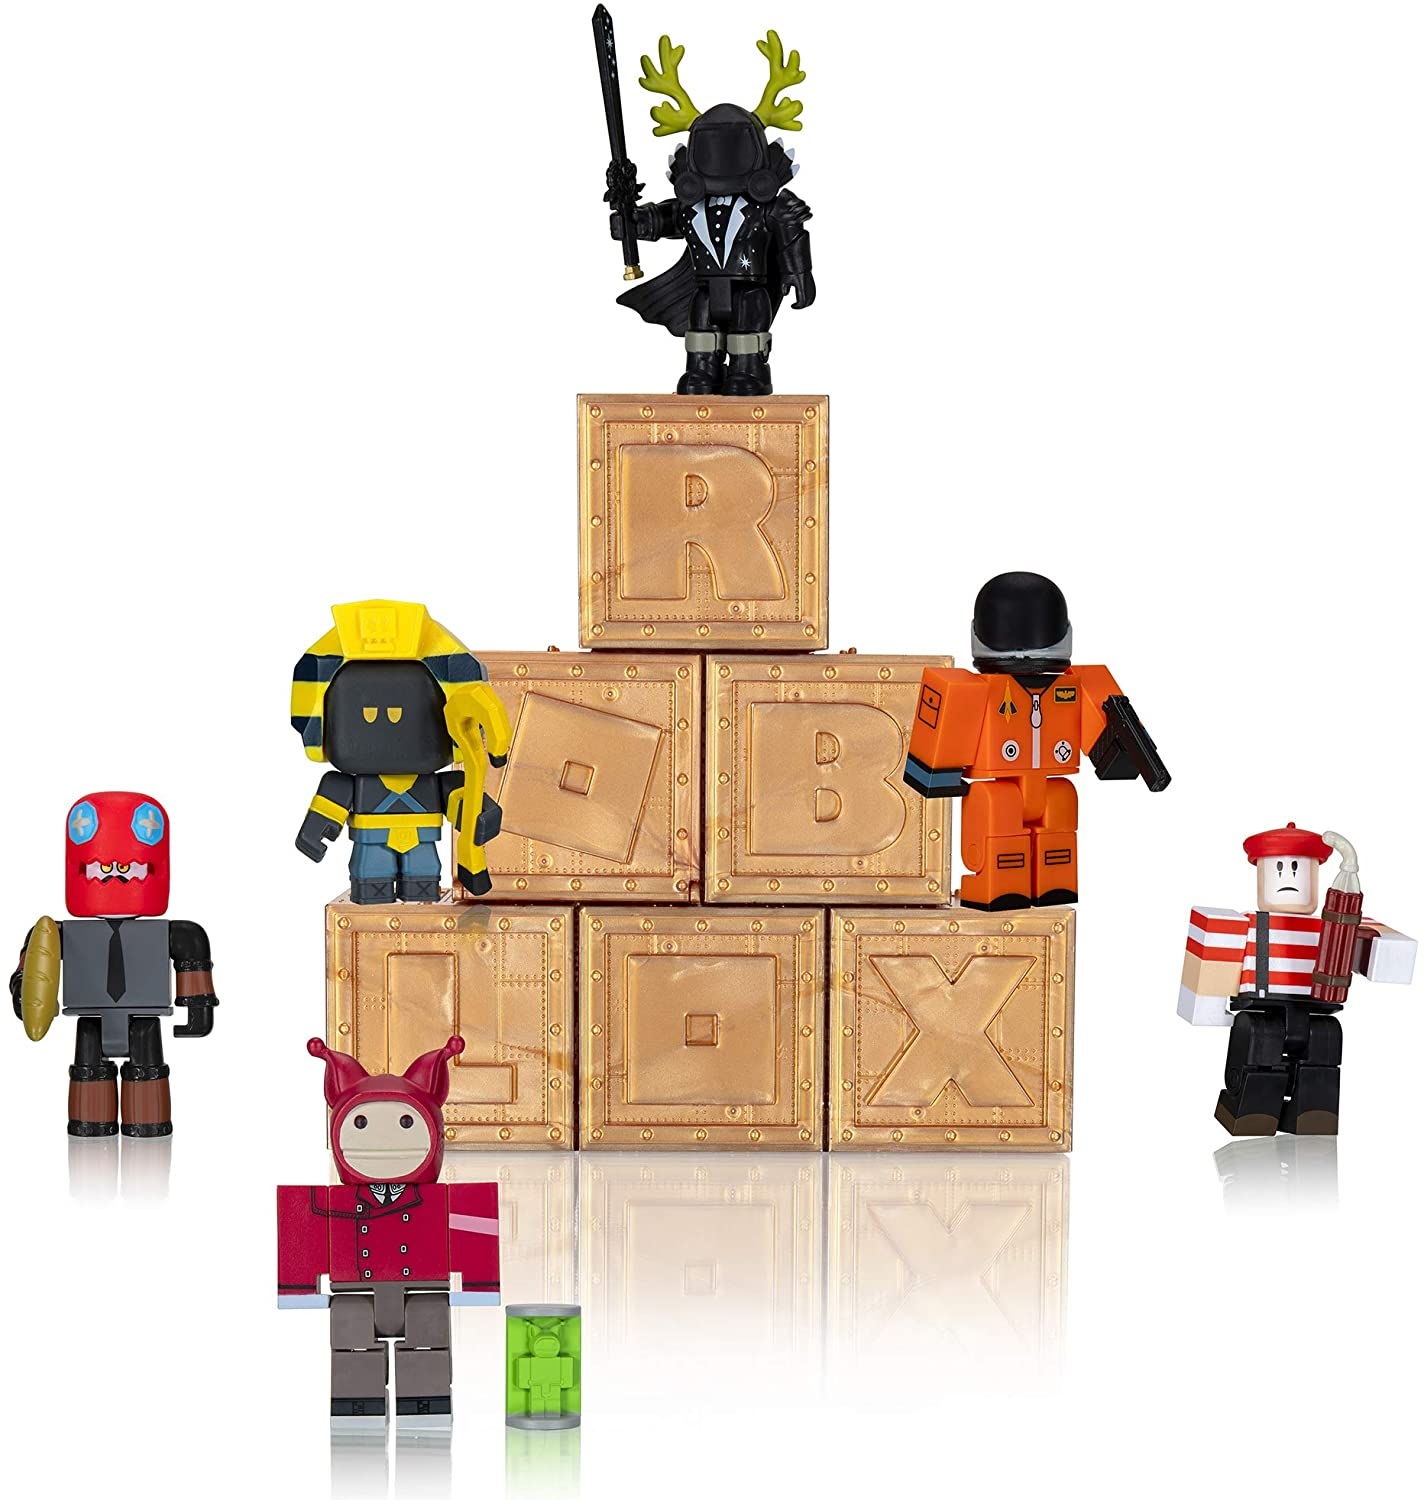 Roblox Jailbreak Copper Key Codes Roblox Free Backpack Amazon Com Roblox Action Collection Series 8 Mystery Figure 6 Pack Includes 6 Exclusive Virtual Items Toys Games